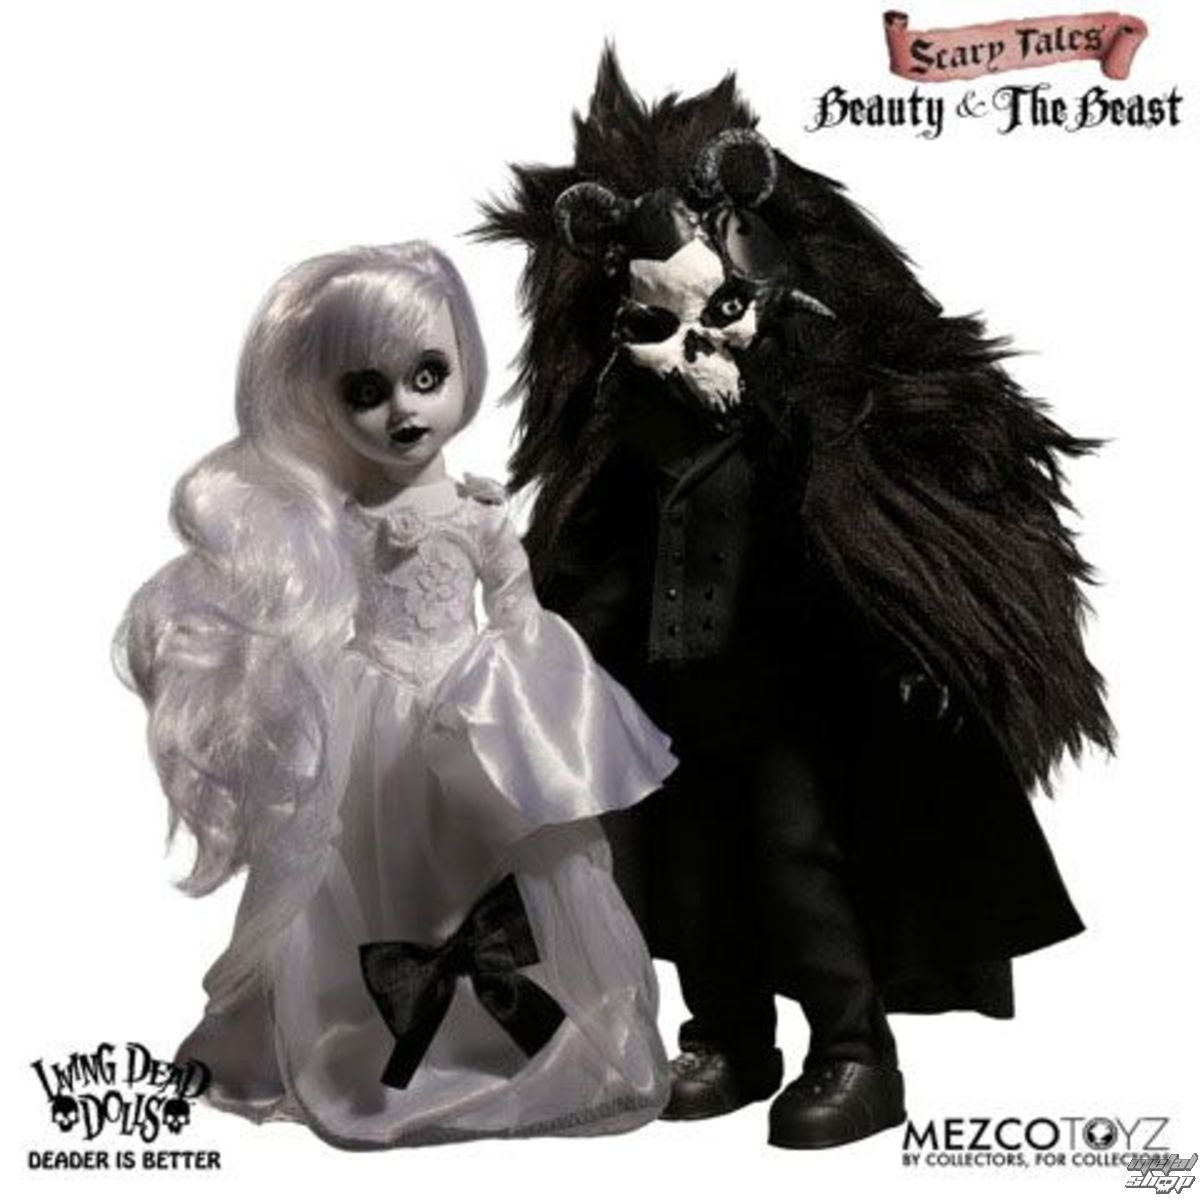 LIVING DEAD DOLLS Scary Tales Beauty and the Beast